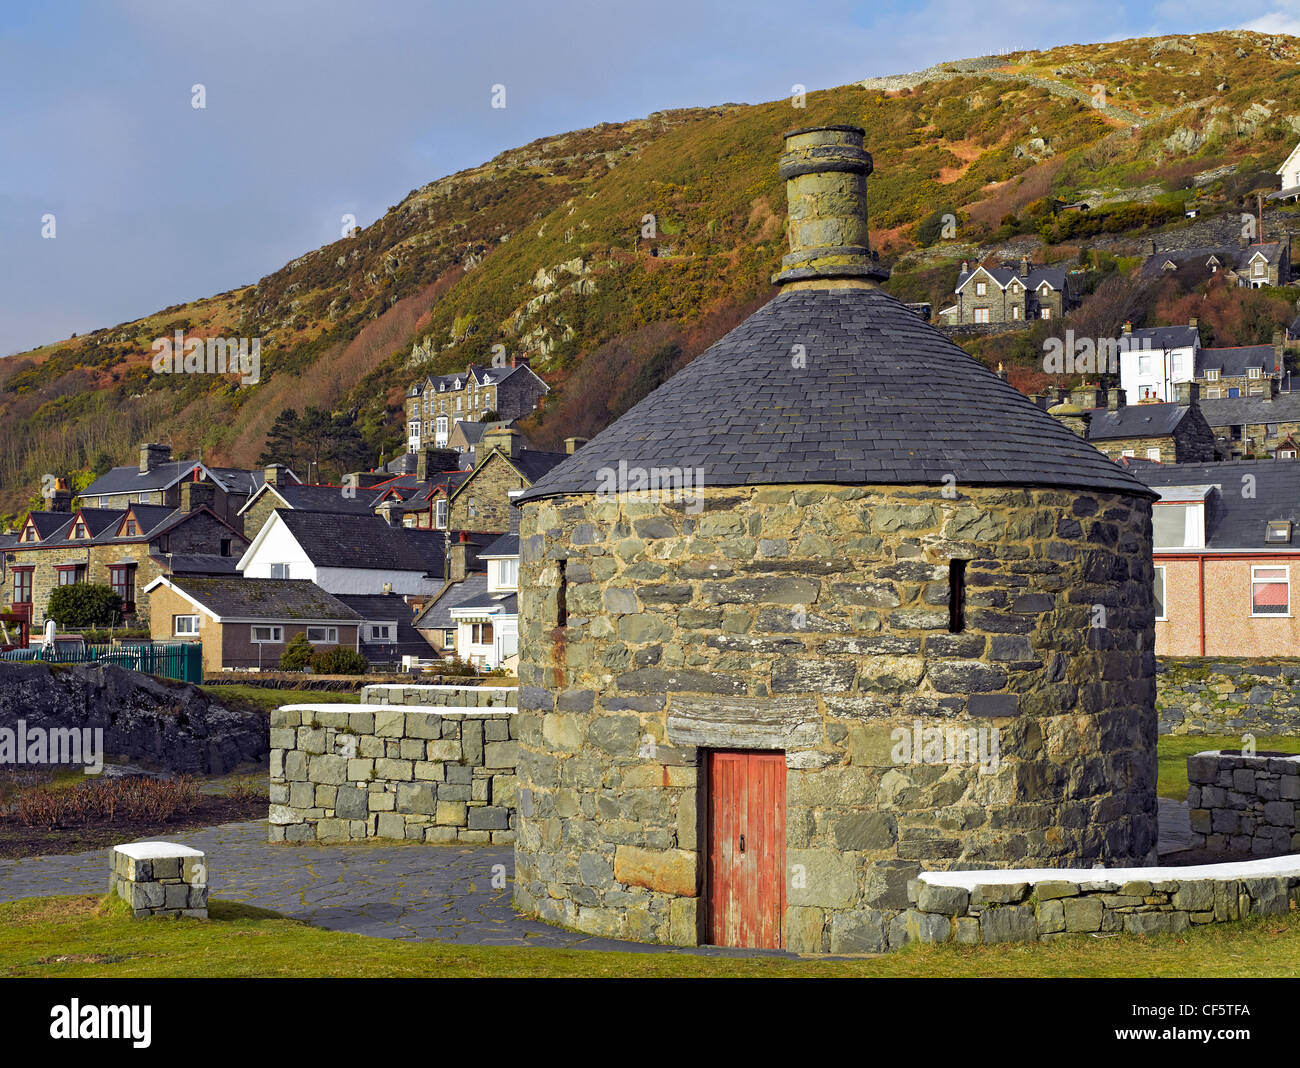 Ty Crwn ('Round House'), built in 1834 as a lock-up to detain offenders as they waited to be transferred - Stock Image